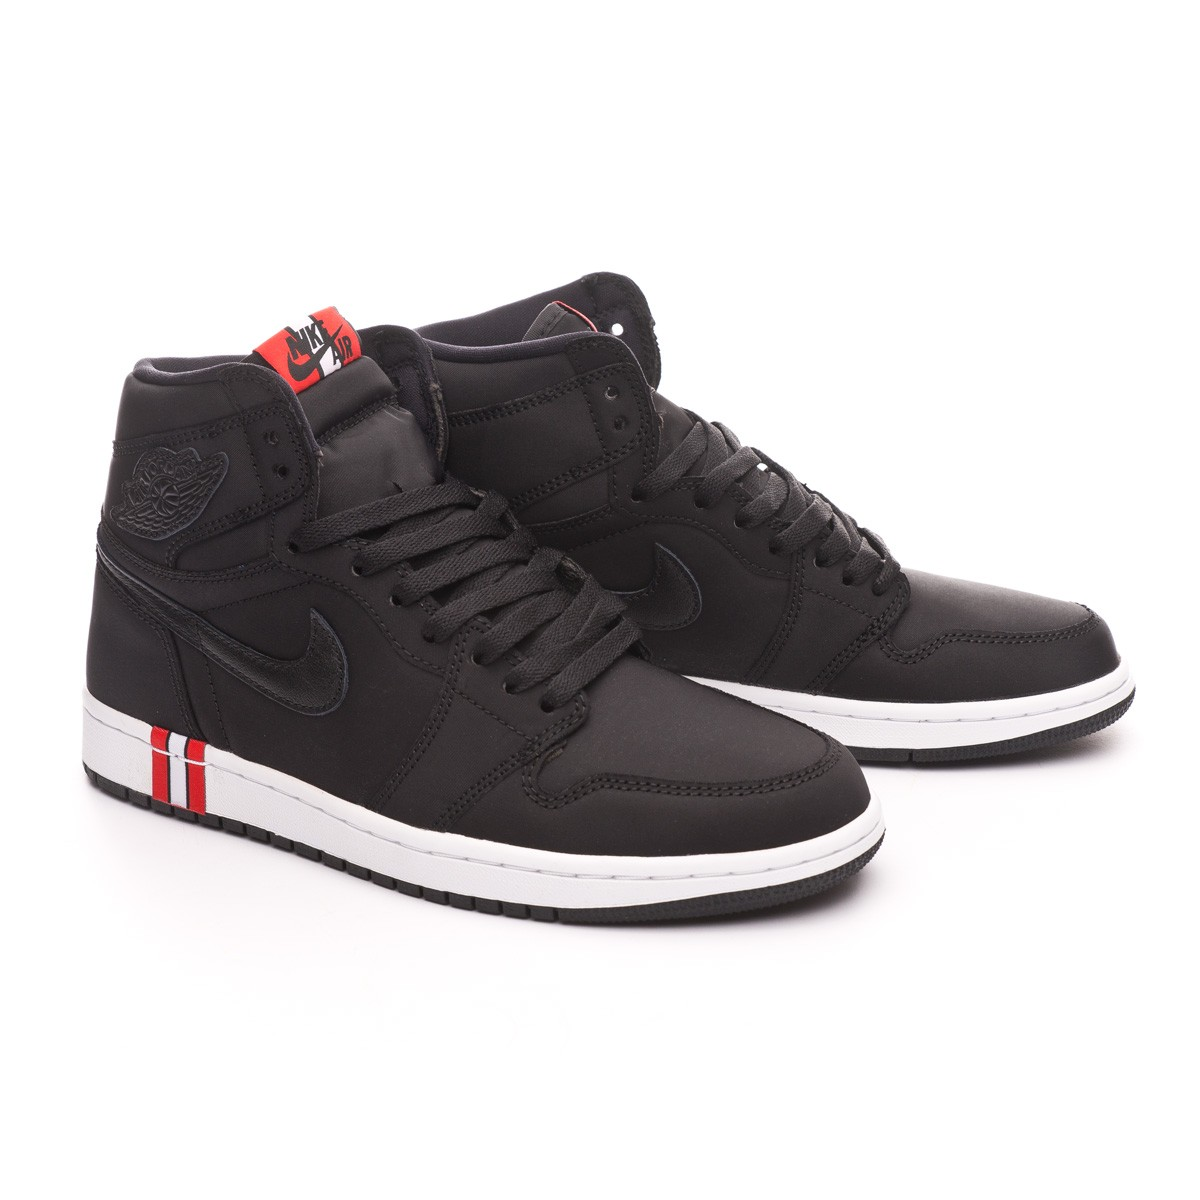 Nike Air Jordan 1 Retro Hi OG Jordan x PSG Trainers. Black-Challenge red- White ... 9dba86c18